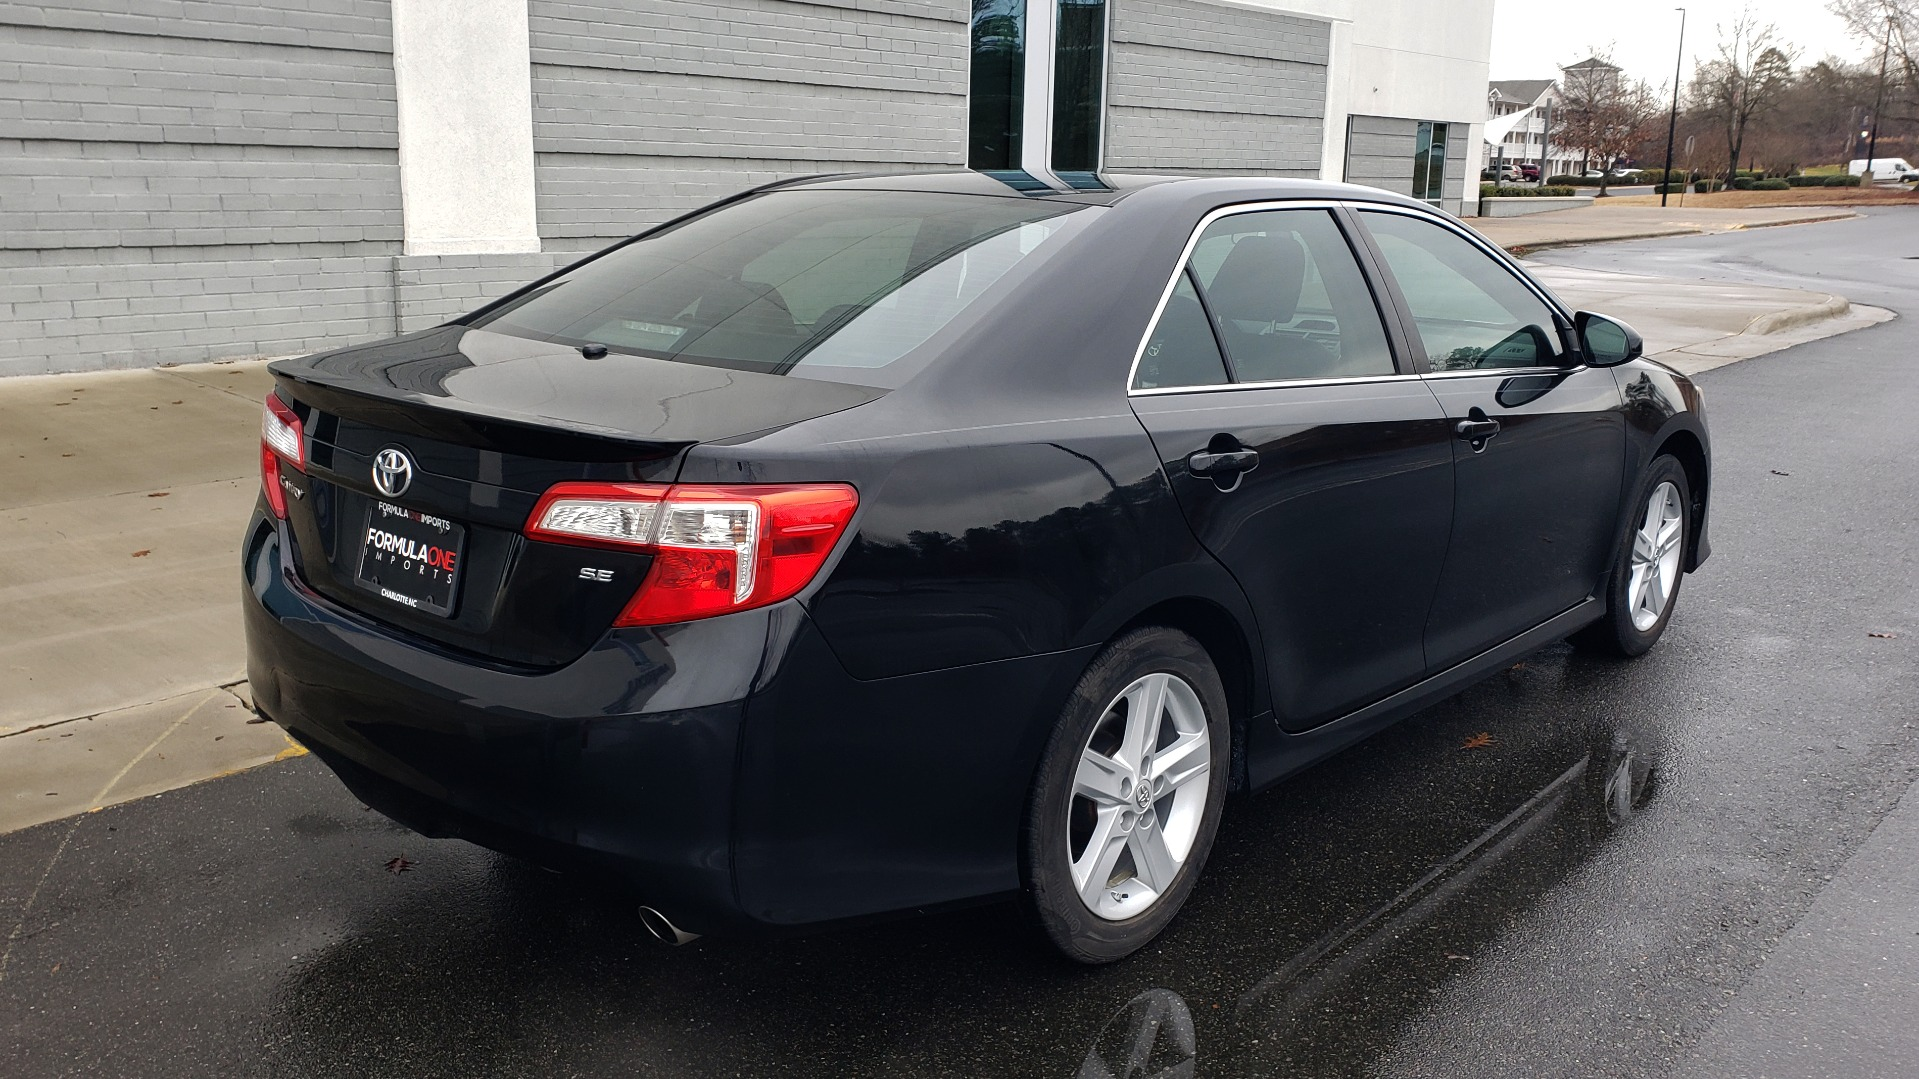 Used 2014 Toyota CAMRY SE SEDAN / 2.5L 4-CYL / 6-SPD AUTO / 17IN ALLOY WHEELS for sale $10,499 at Formula Imports in Charlotte NC 28227 6